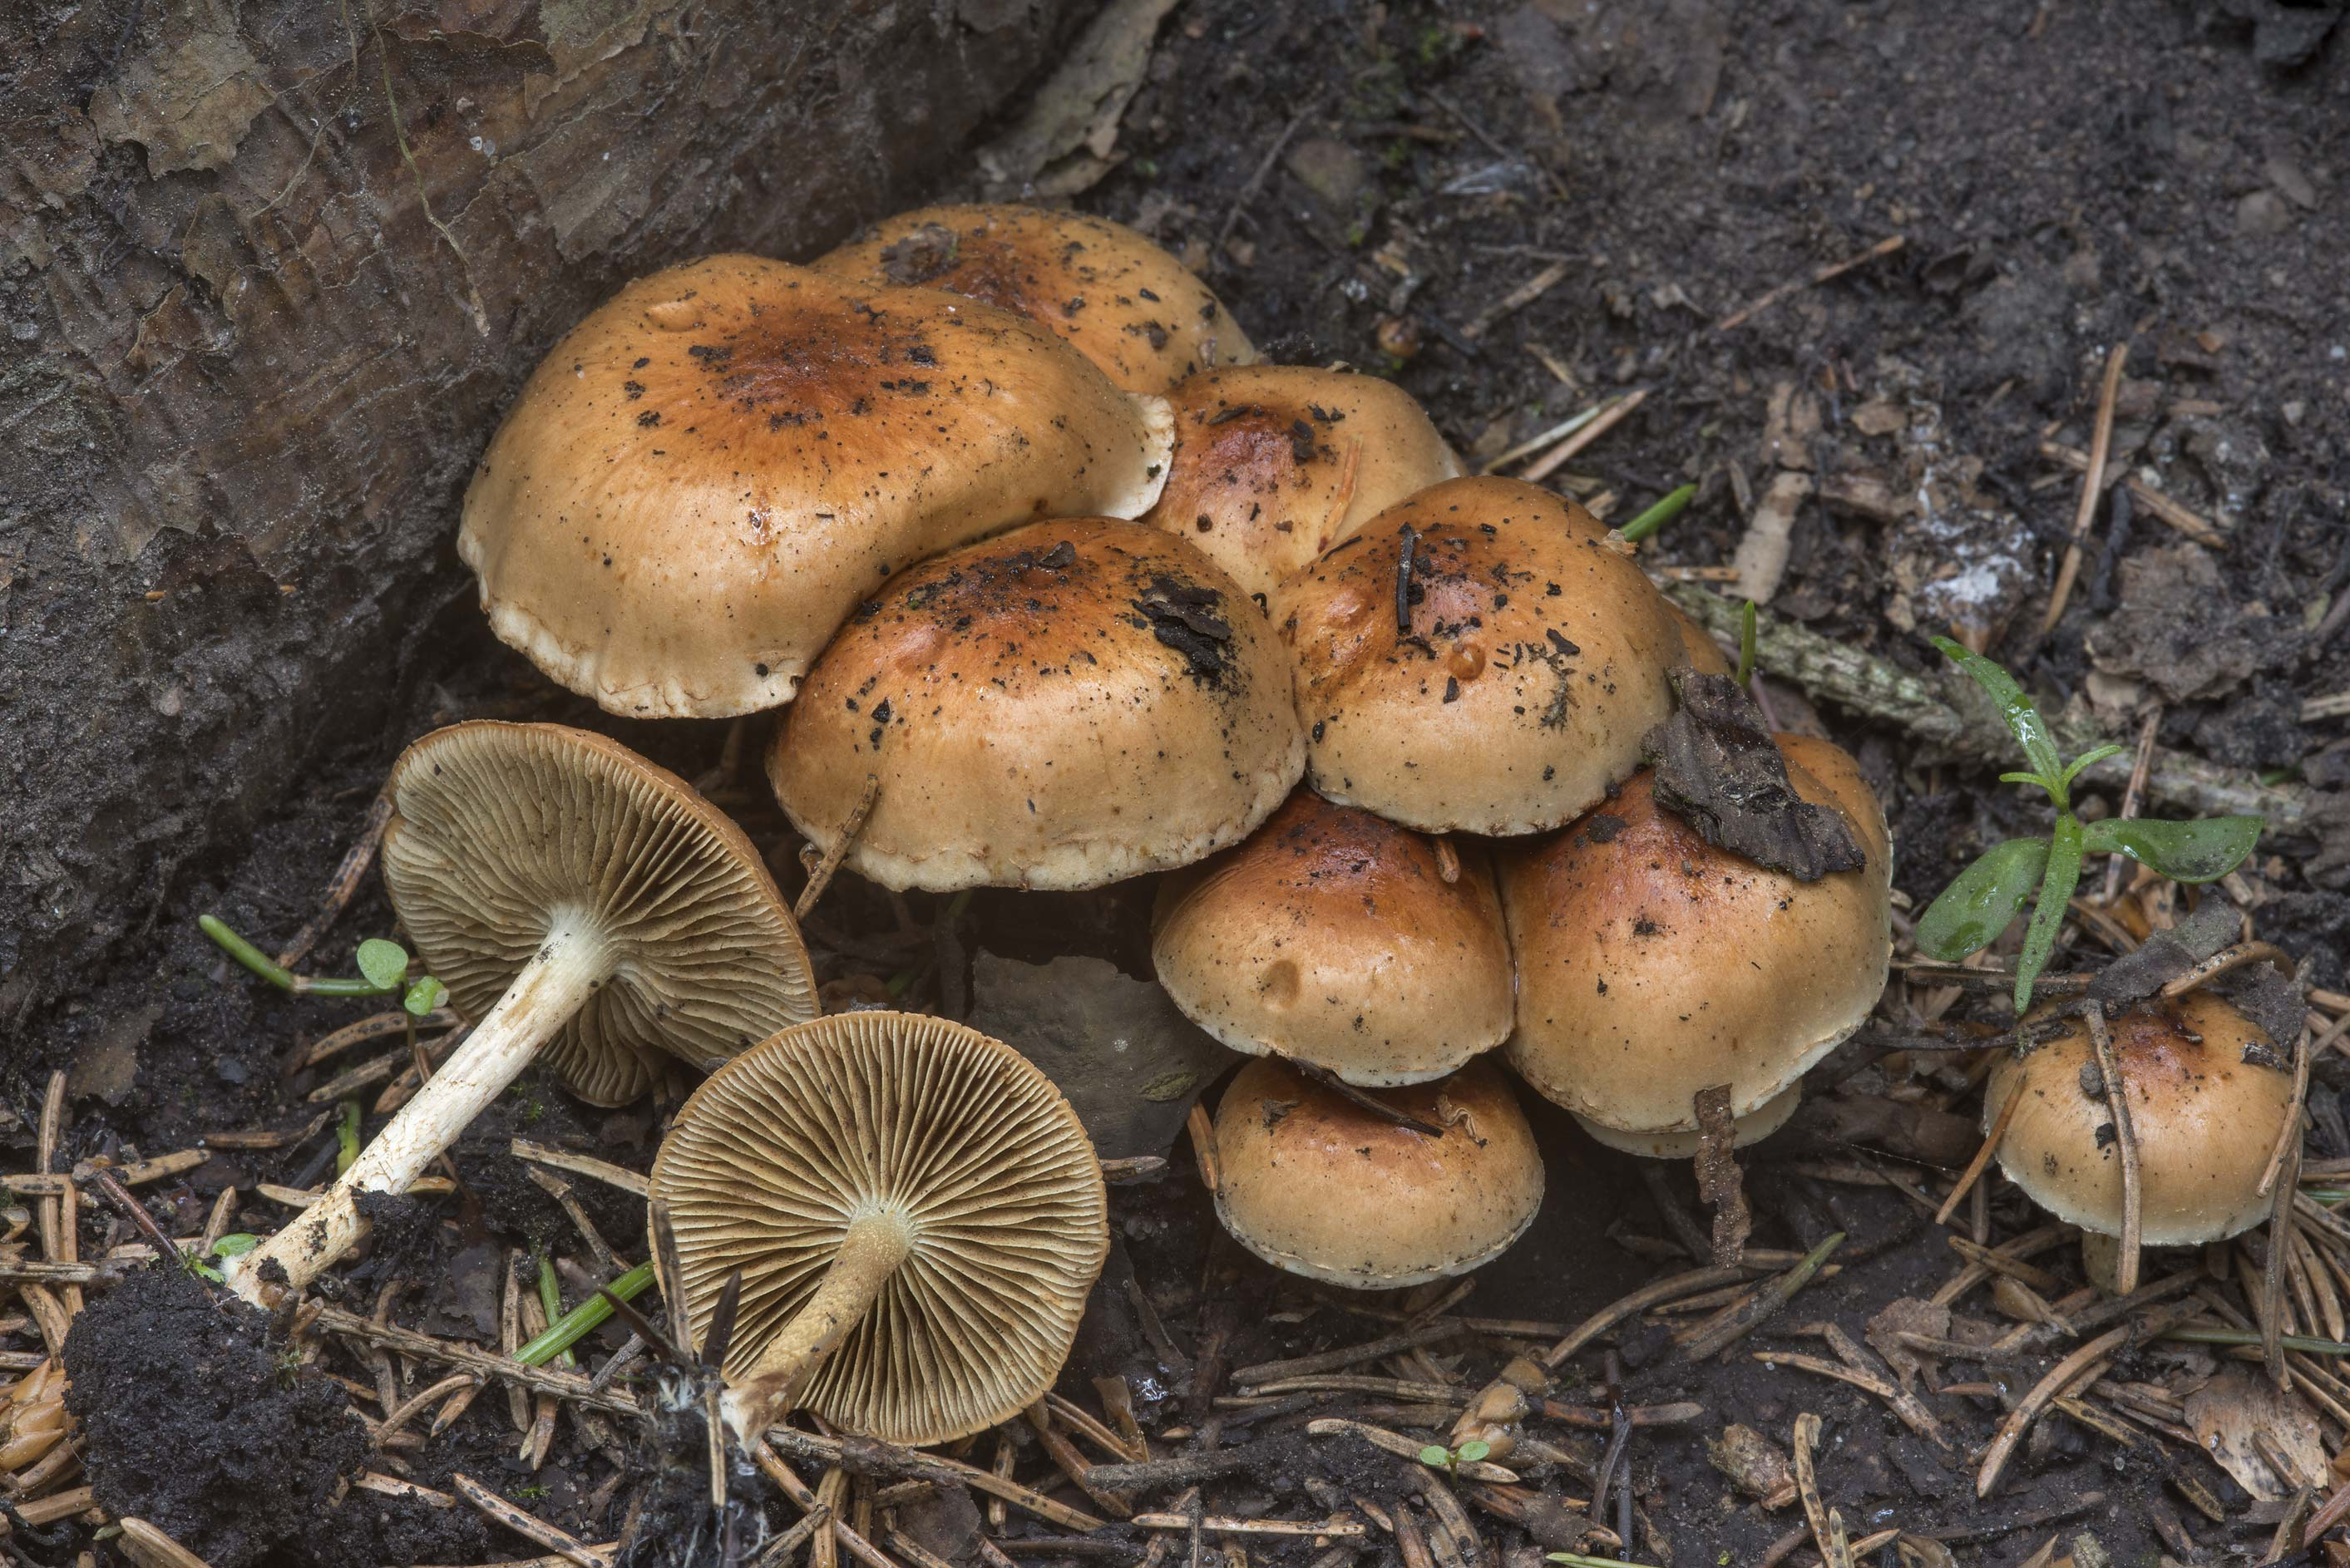 Bonfire scalycap mushrooms (Pholiota...north from St.Petersburg. Russia